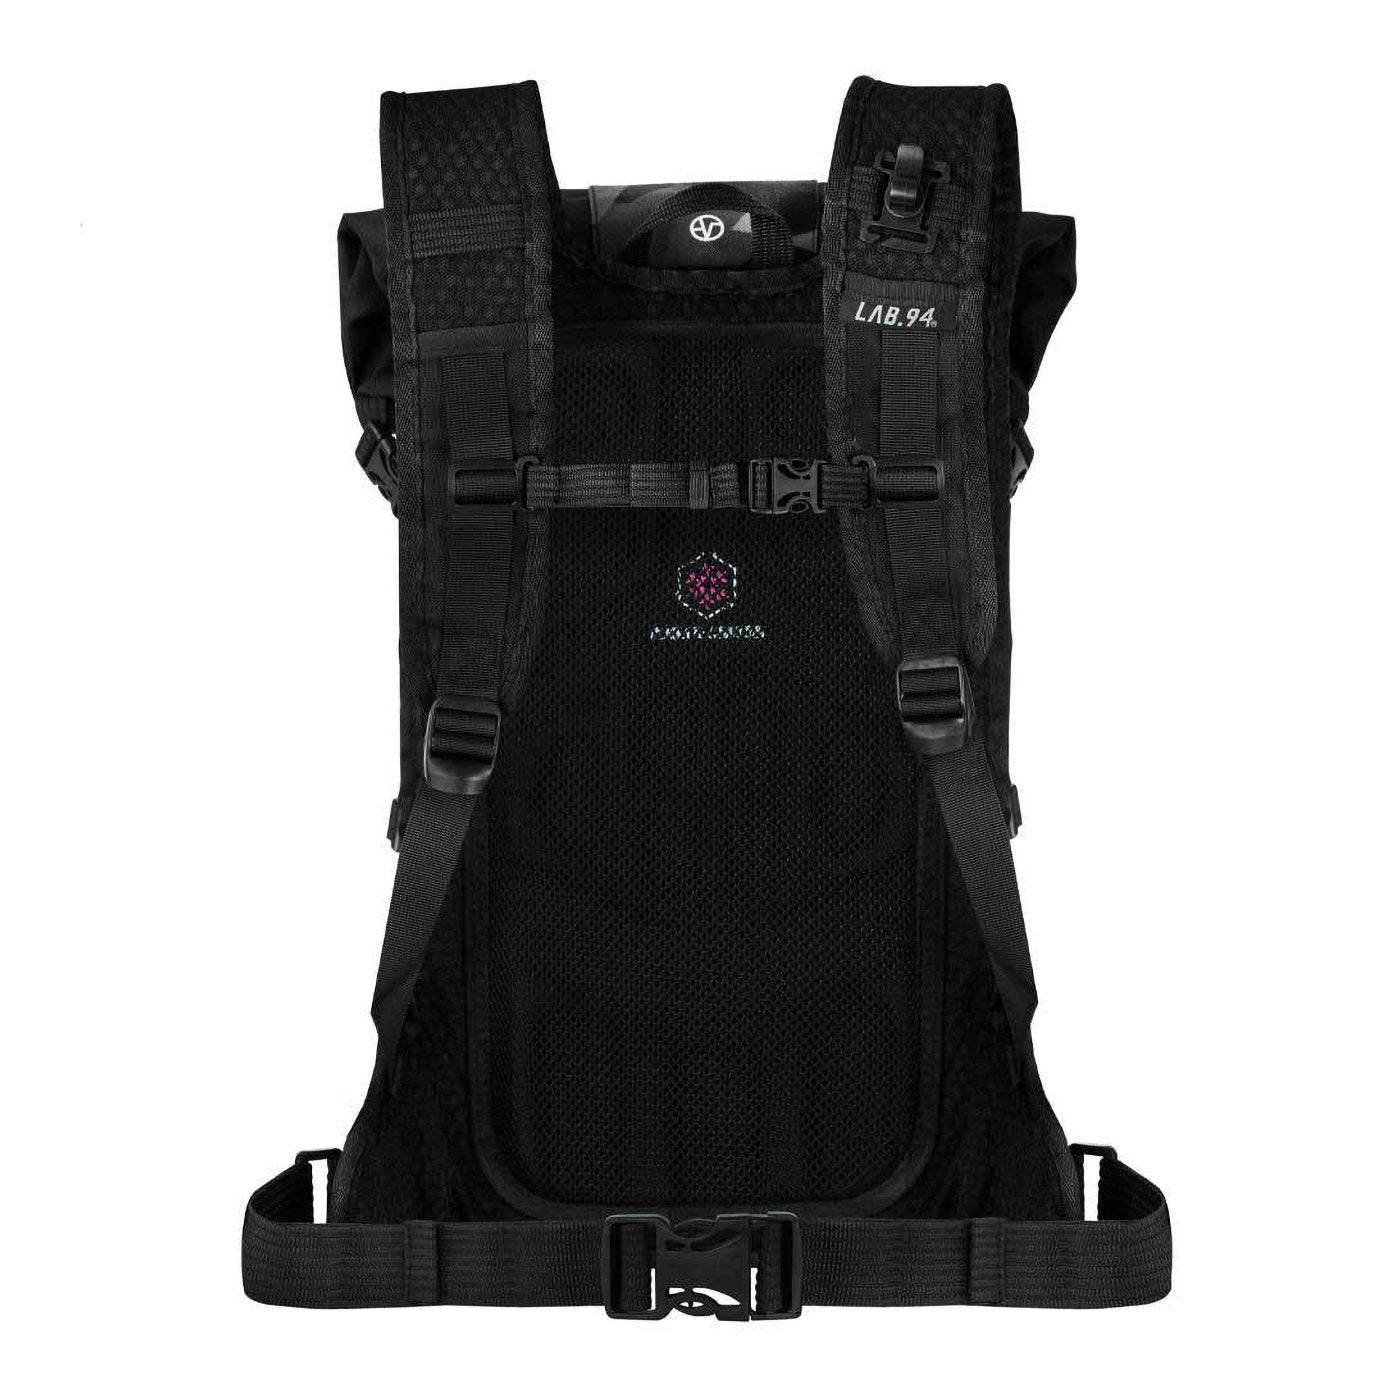 LAB.94 Ride Pack, Back Protector, DOPP Bag & Reservoir